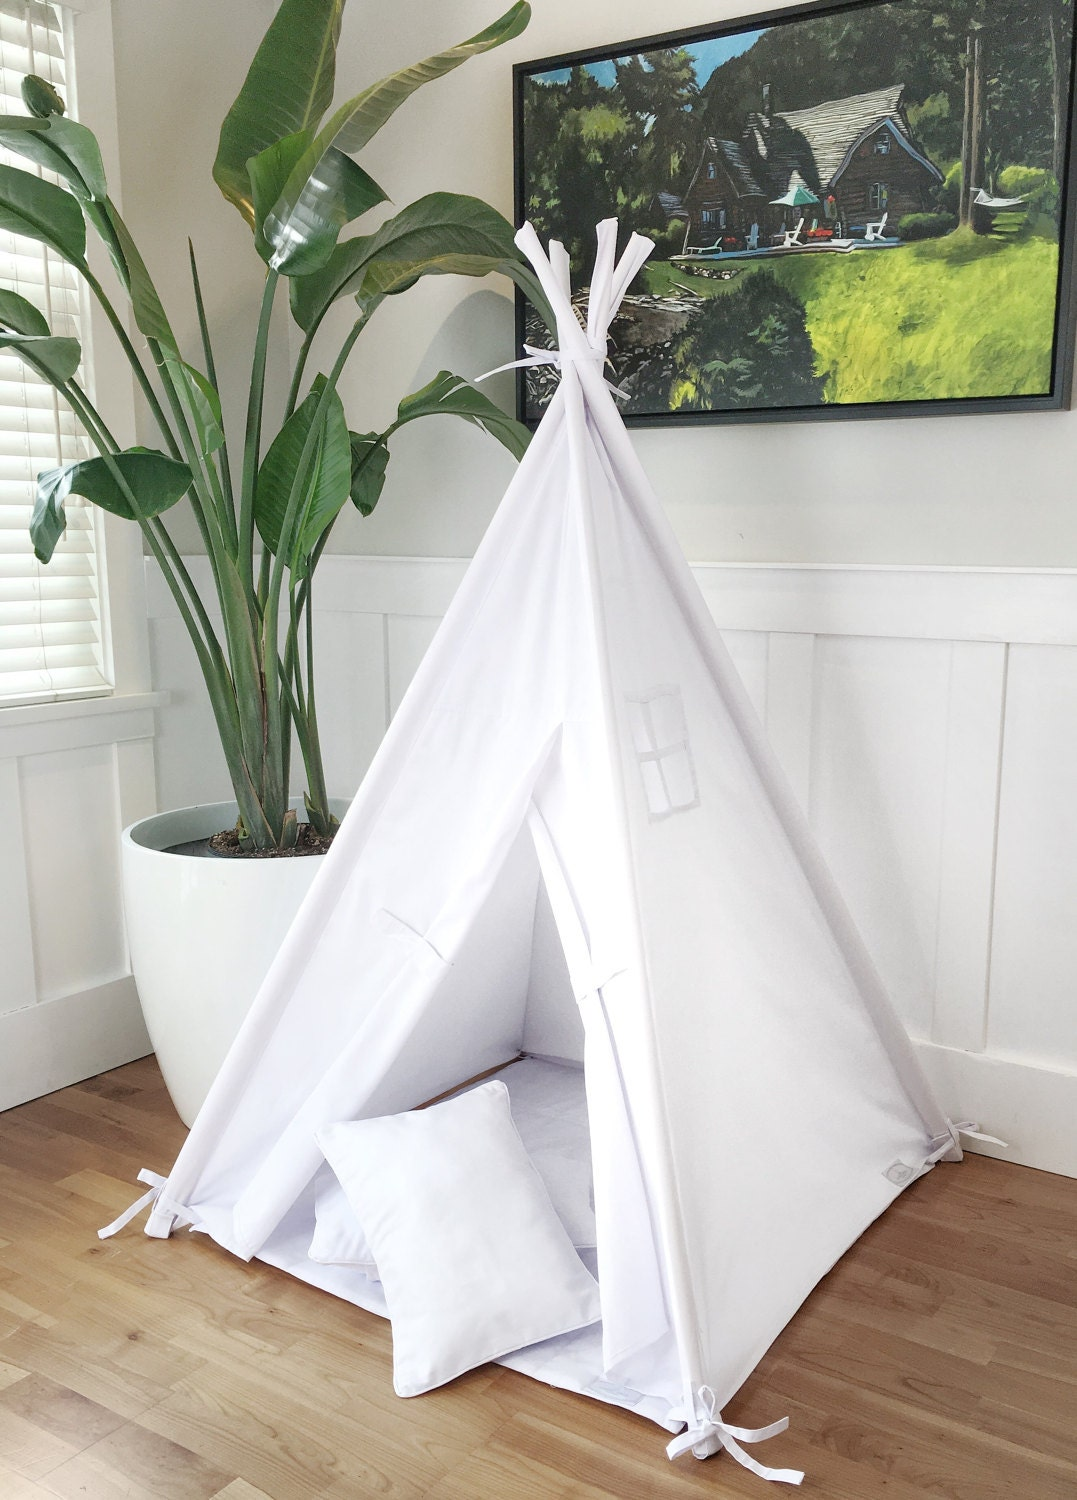 Small Size Childrenu0027s Play Tent Teepee Handmade for Kids in White Twill. Each Comes with Padded Mat Base and Two Pillows & Small Size Childrenu0027s Play Tent Teepee Handmade for Kids in White ...